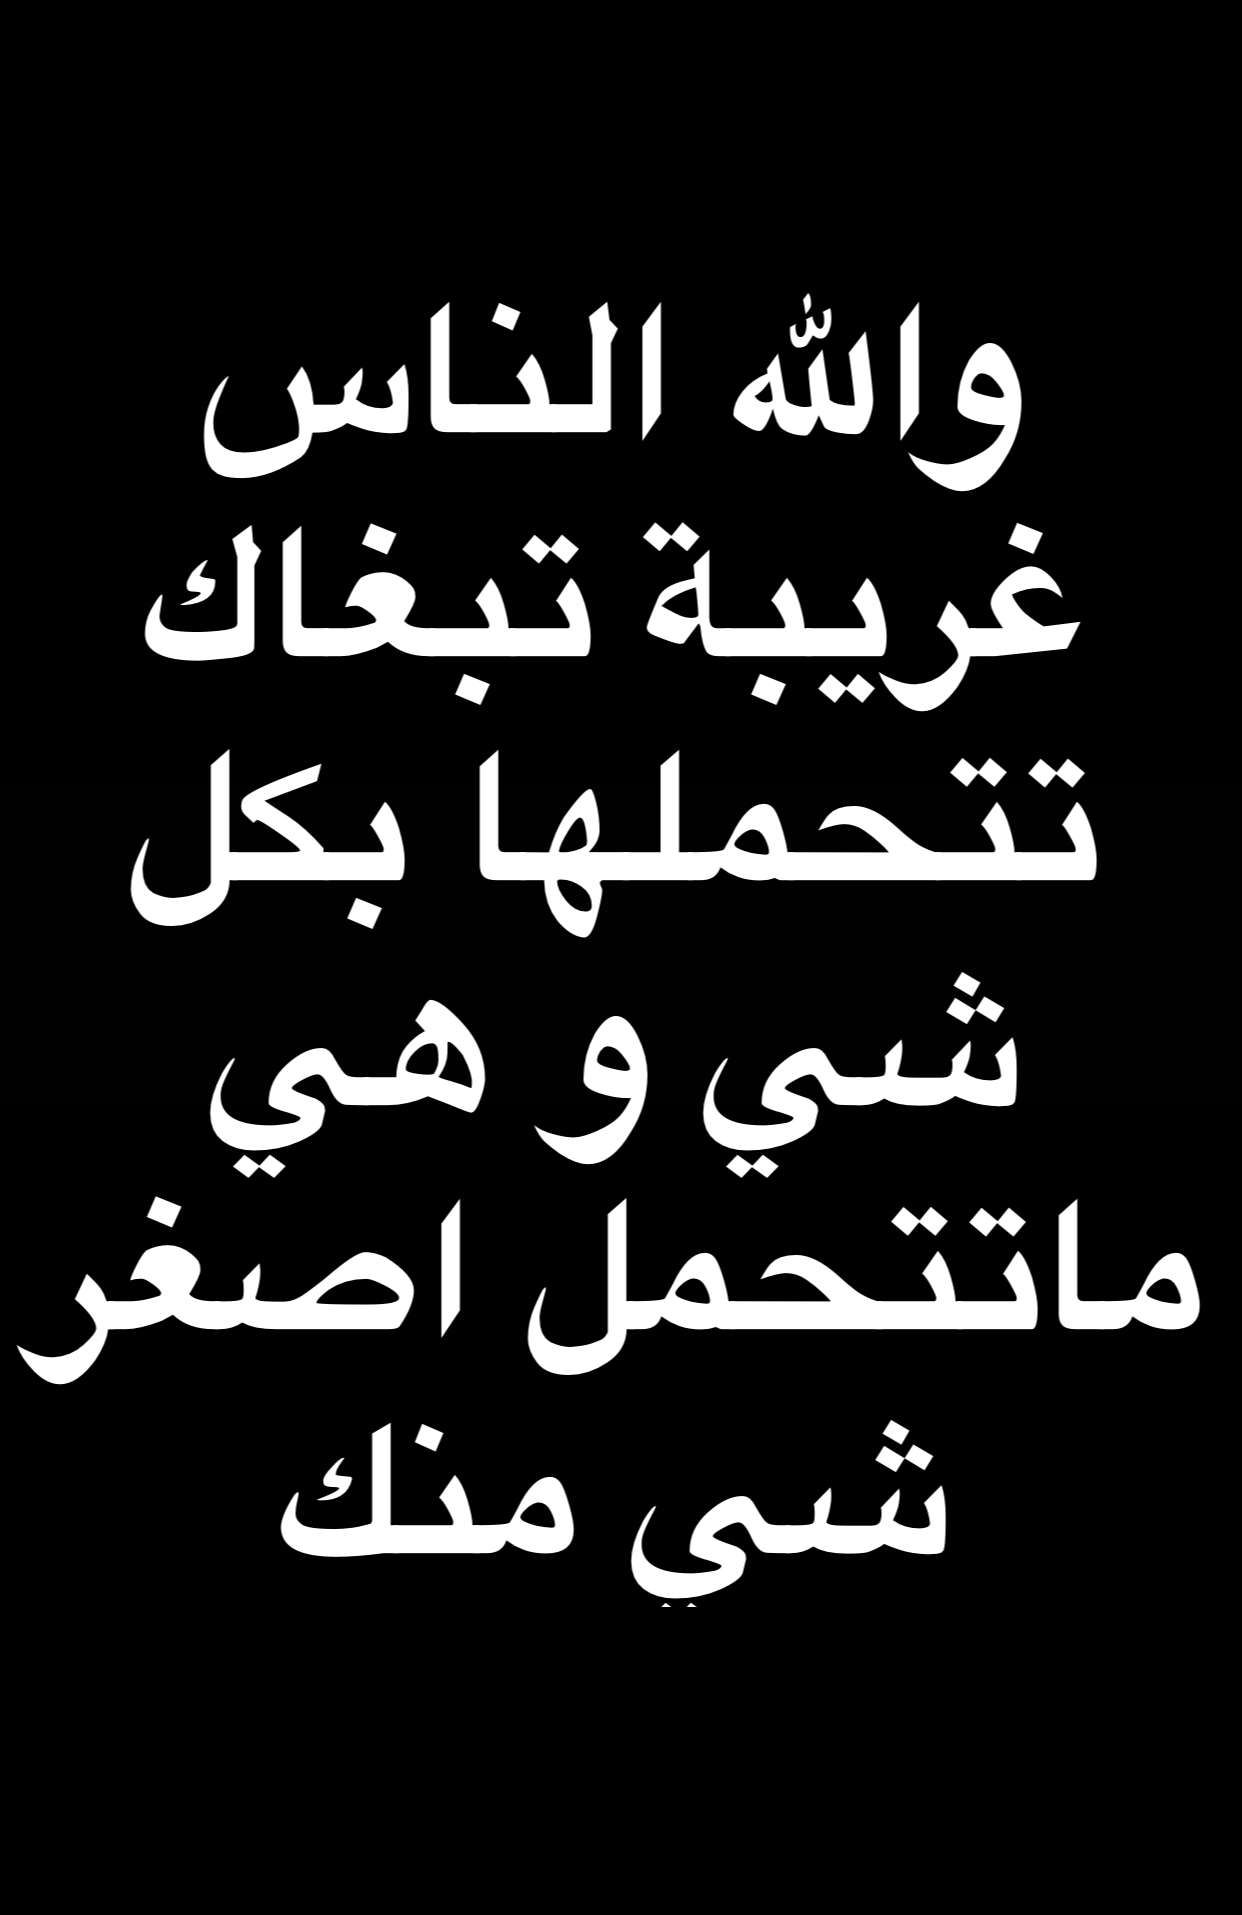 Pin By Edo On فعاليات ميمز Bff Quotes Funny Arabic Quotes Cool Words